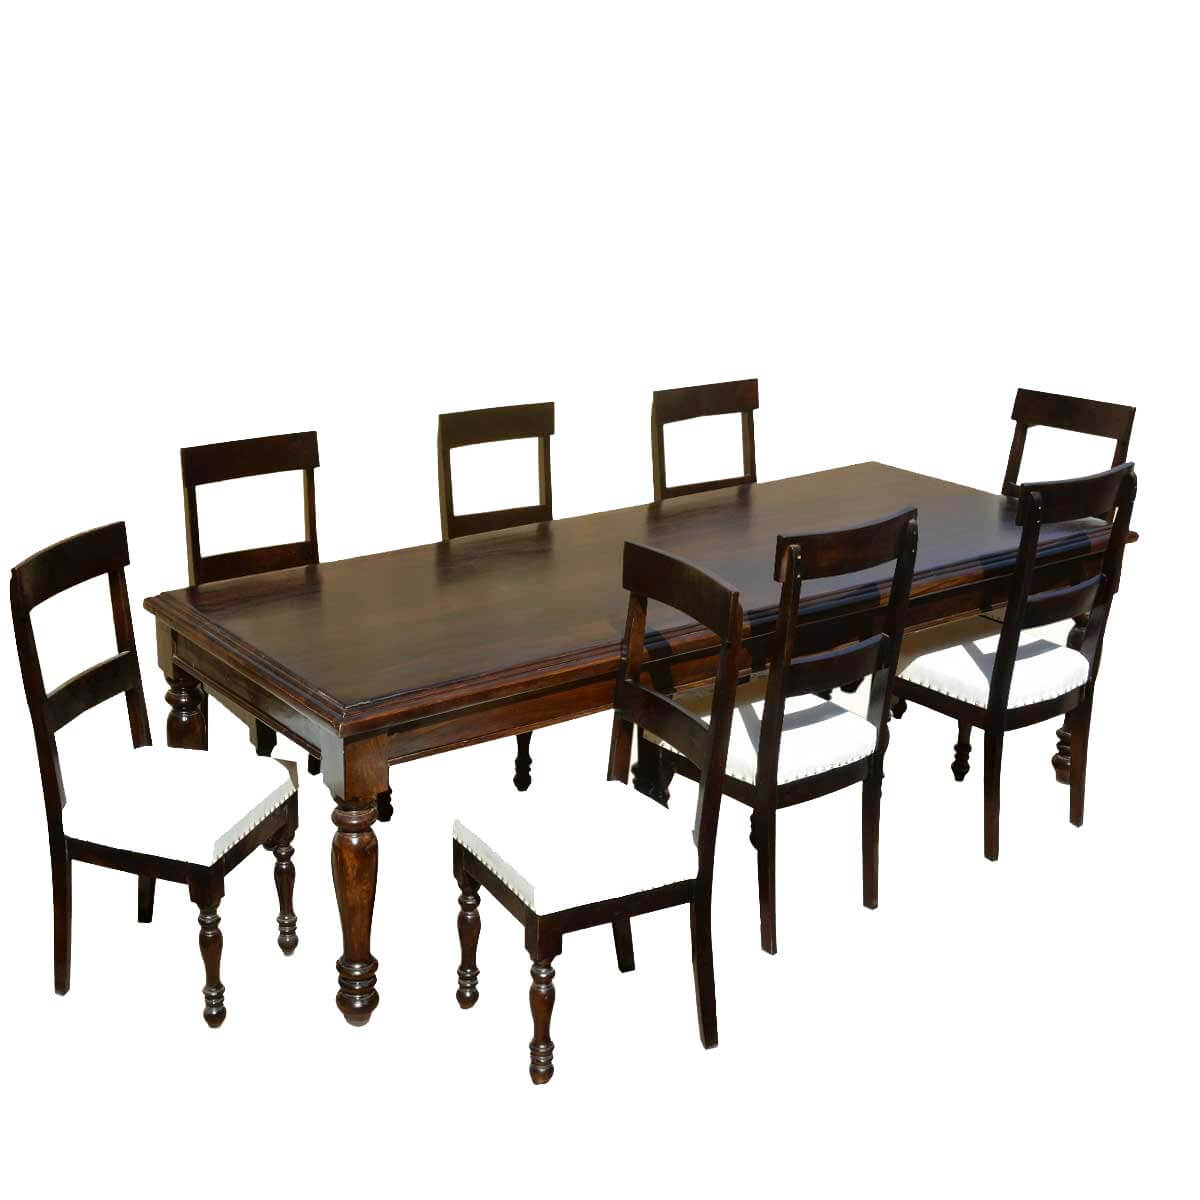 American Solid Wood Dining Table & Leather Upholstered Chairs